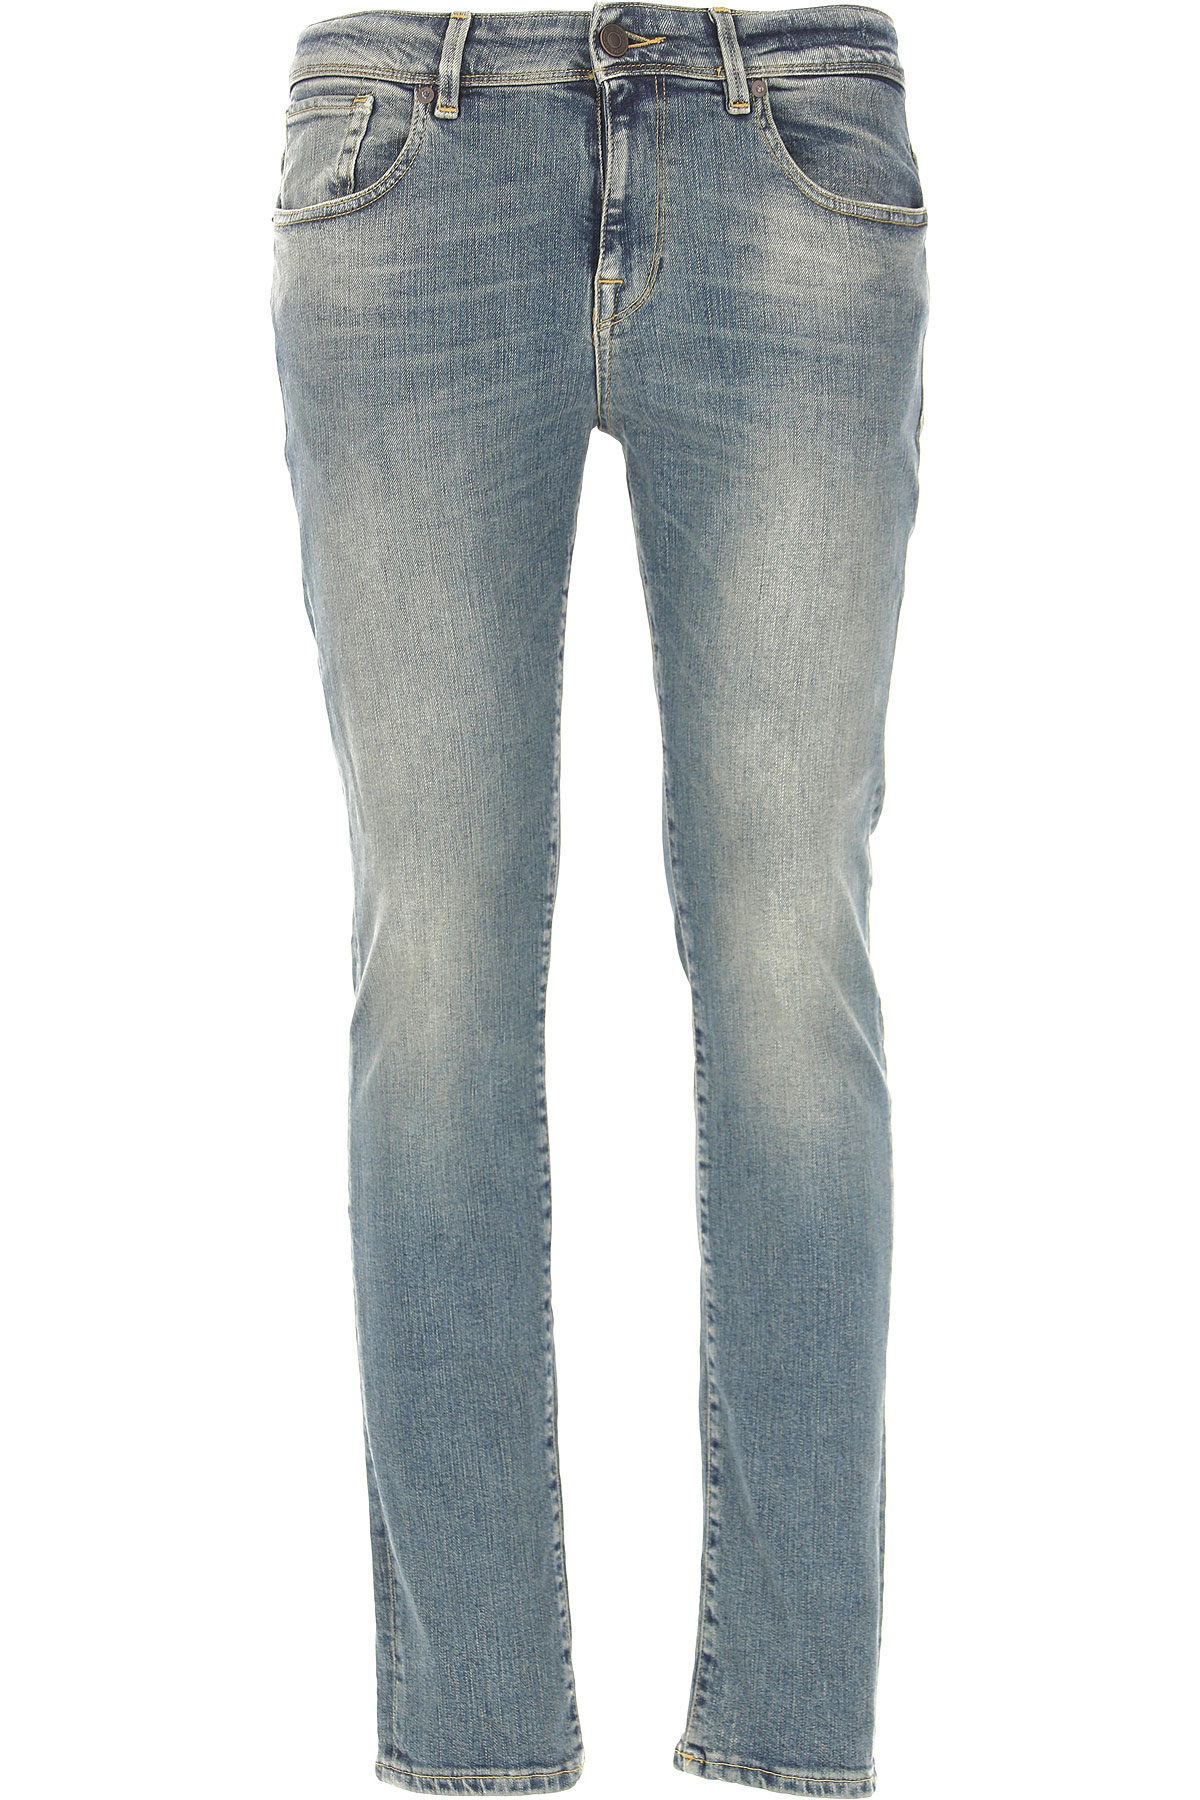 Image of Selected Jeans, Light Blue, Cotton, 2017, 31 33